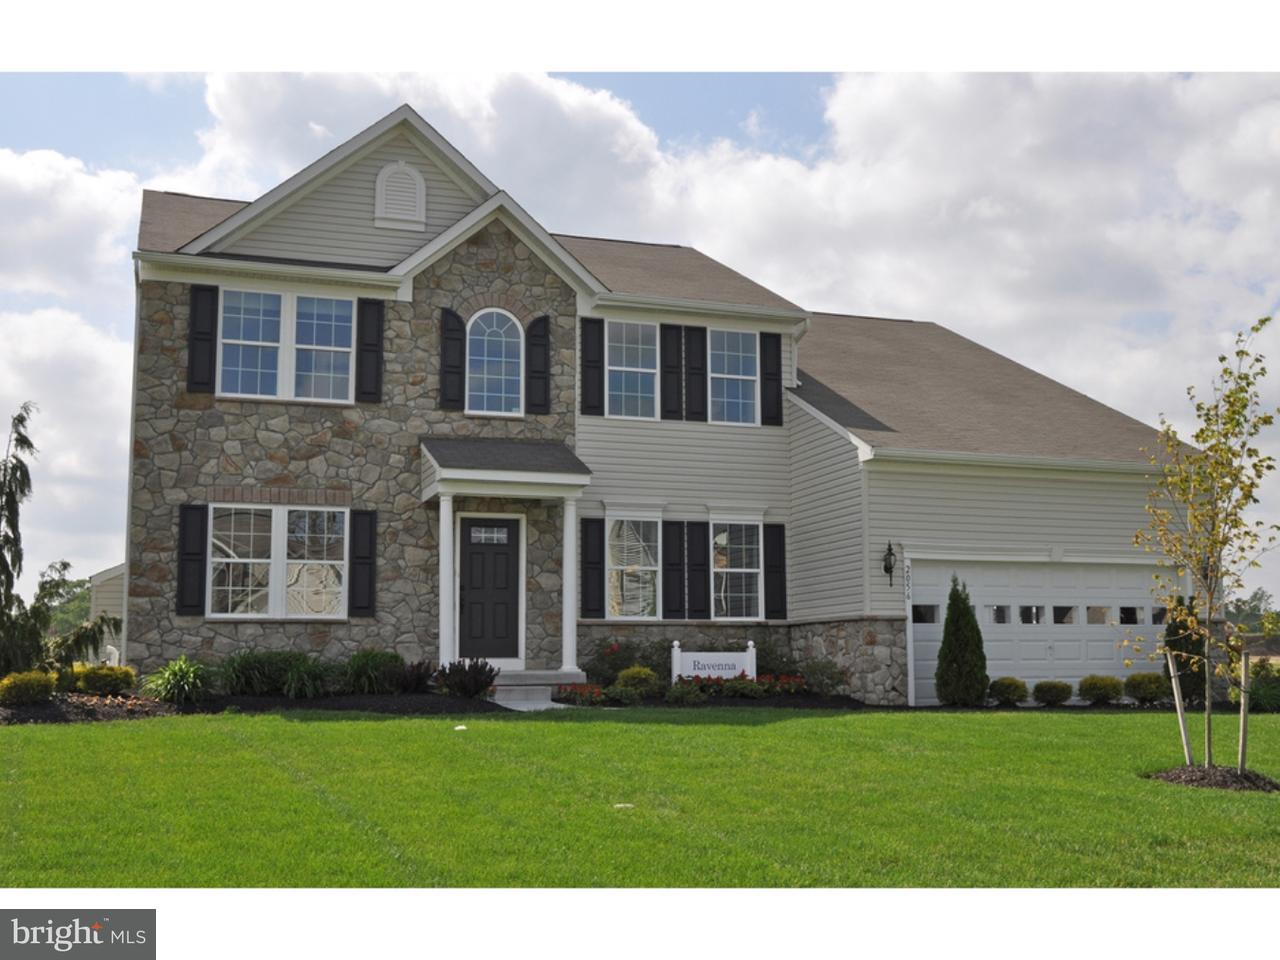 Single Family Home for Sale at 3 PEAR TREE Court Delran, New Jersey 08075 United States